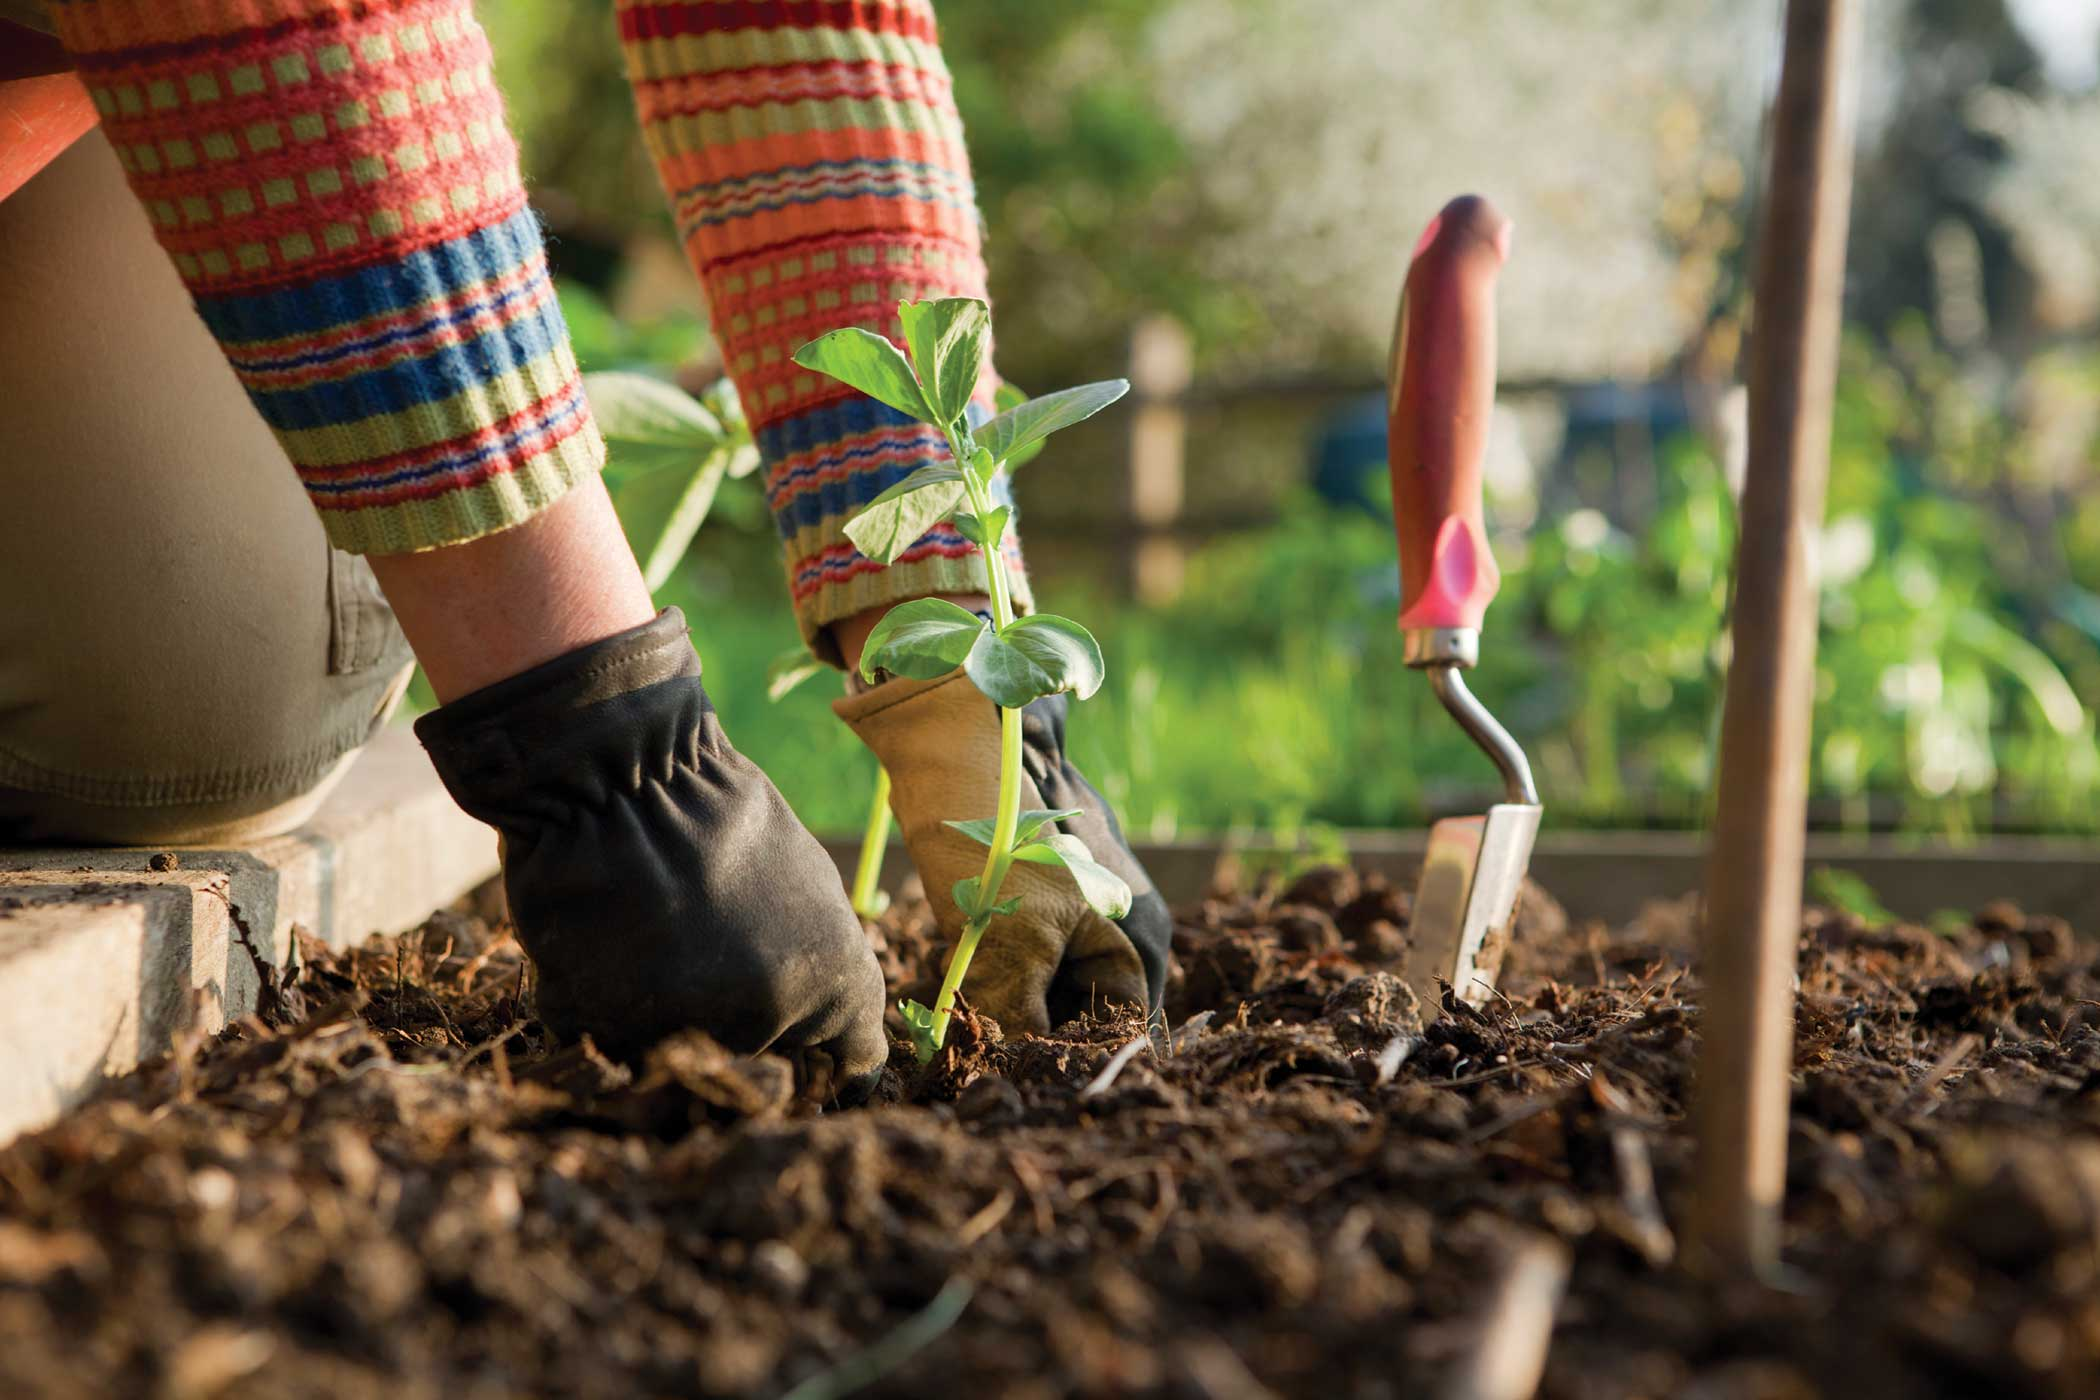 Interested in a Gardening Club online?